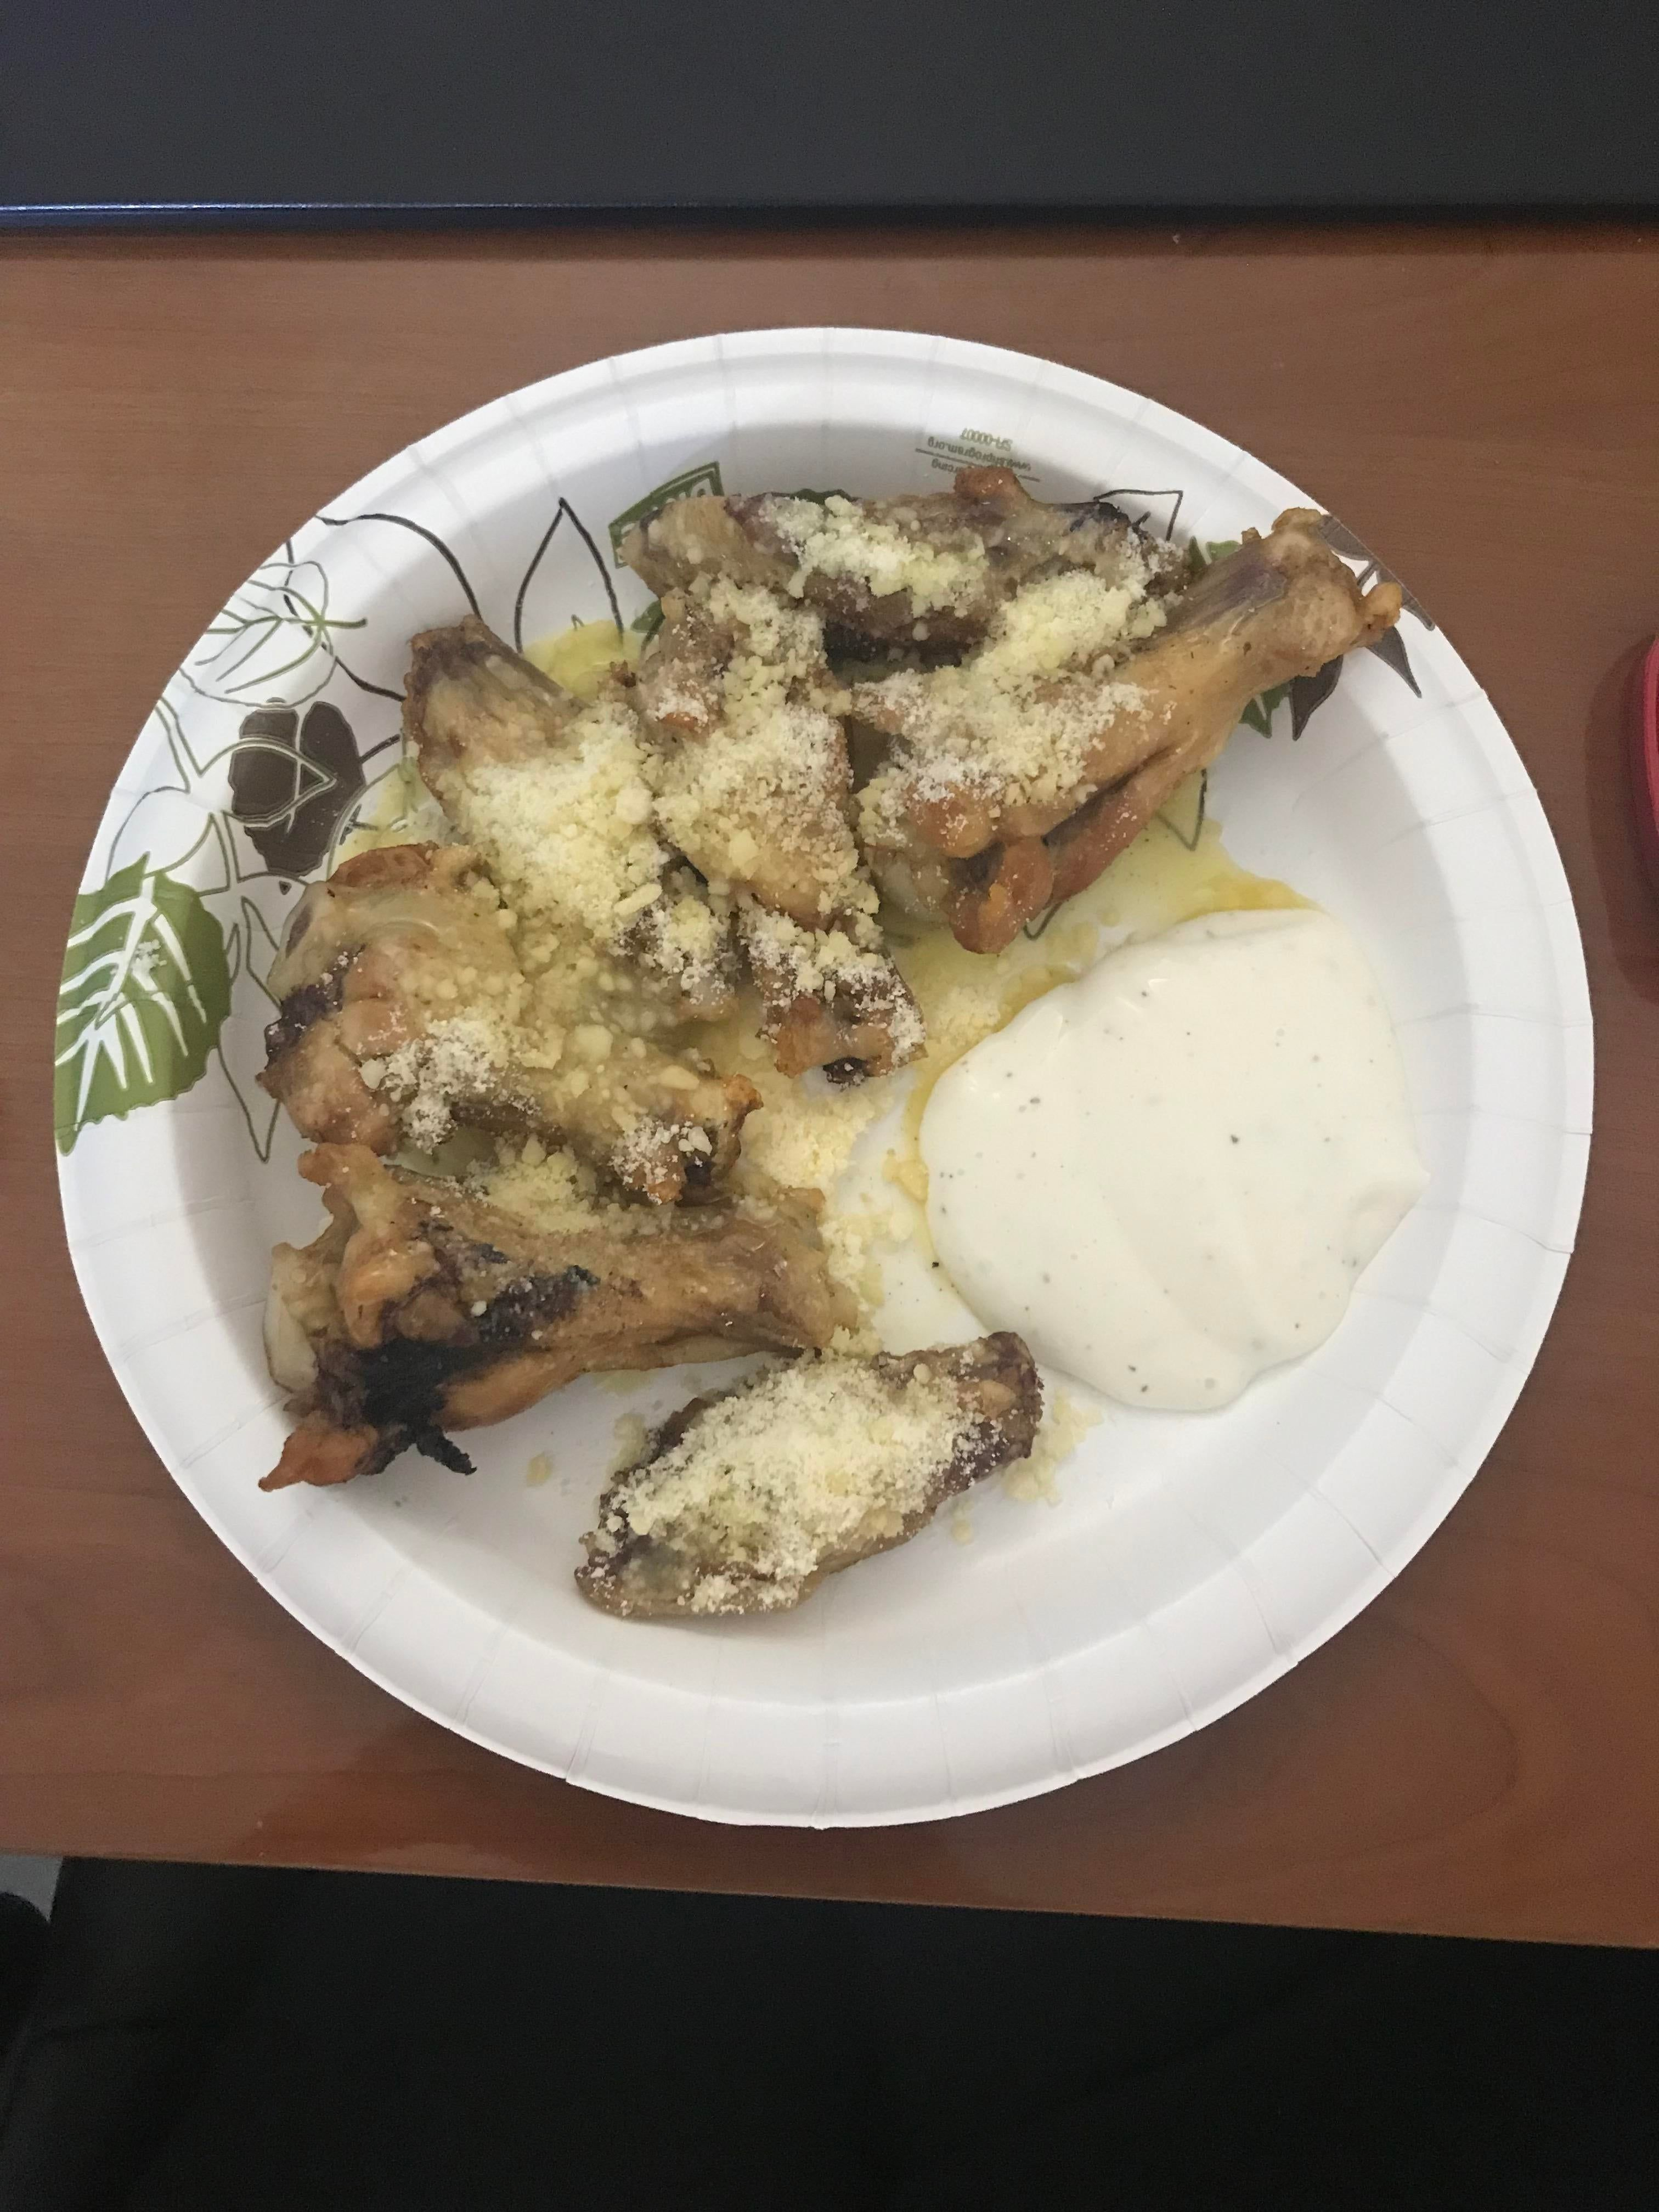 Garlic Parmesan Chicken Wings with Ranch: my go-to meal lately